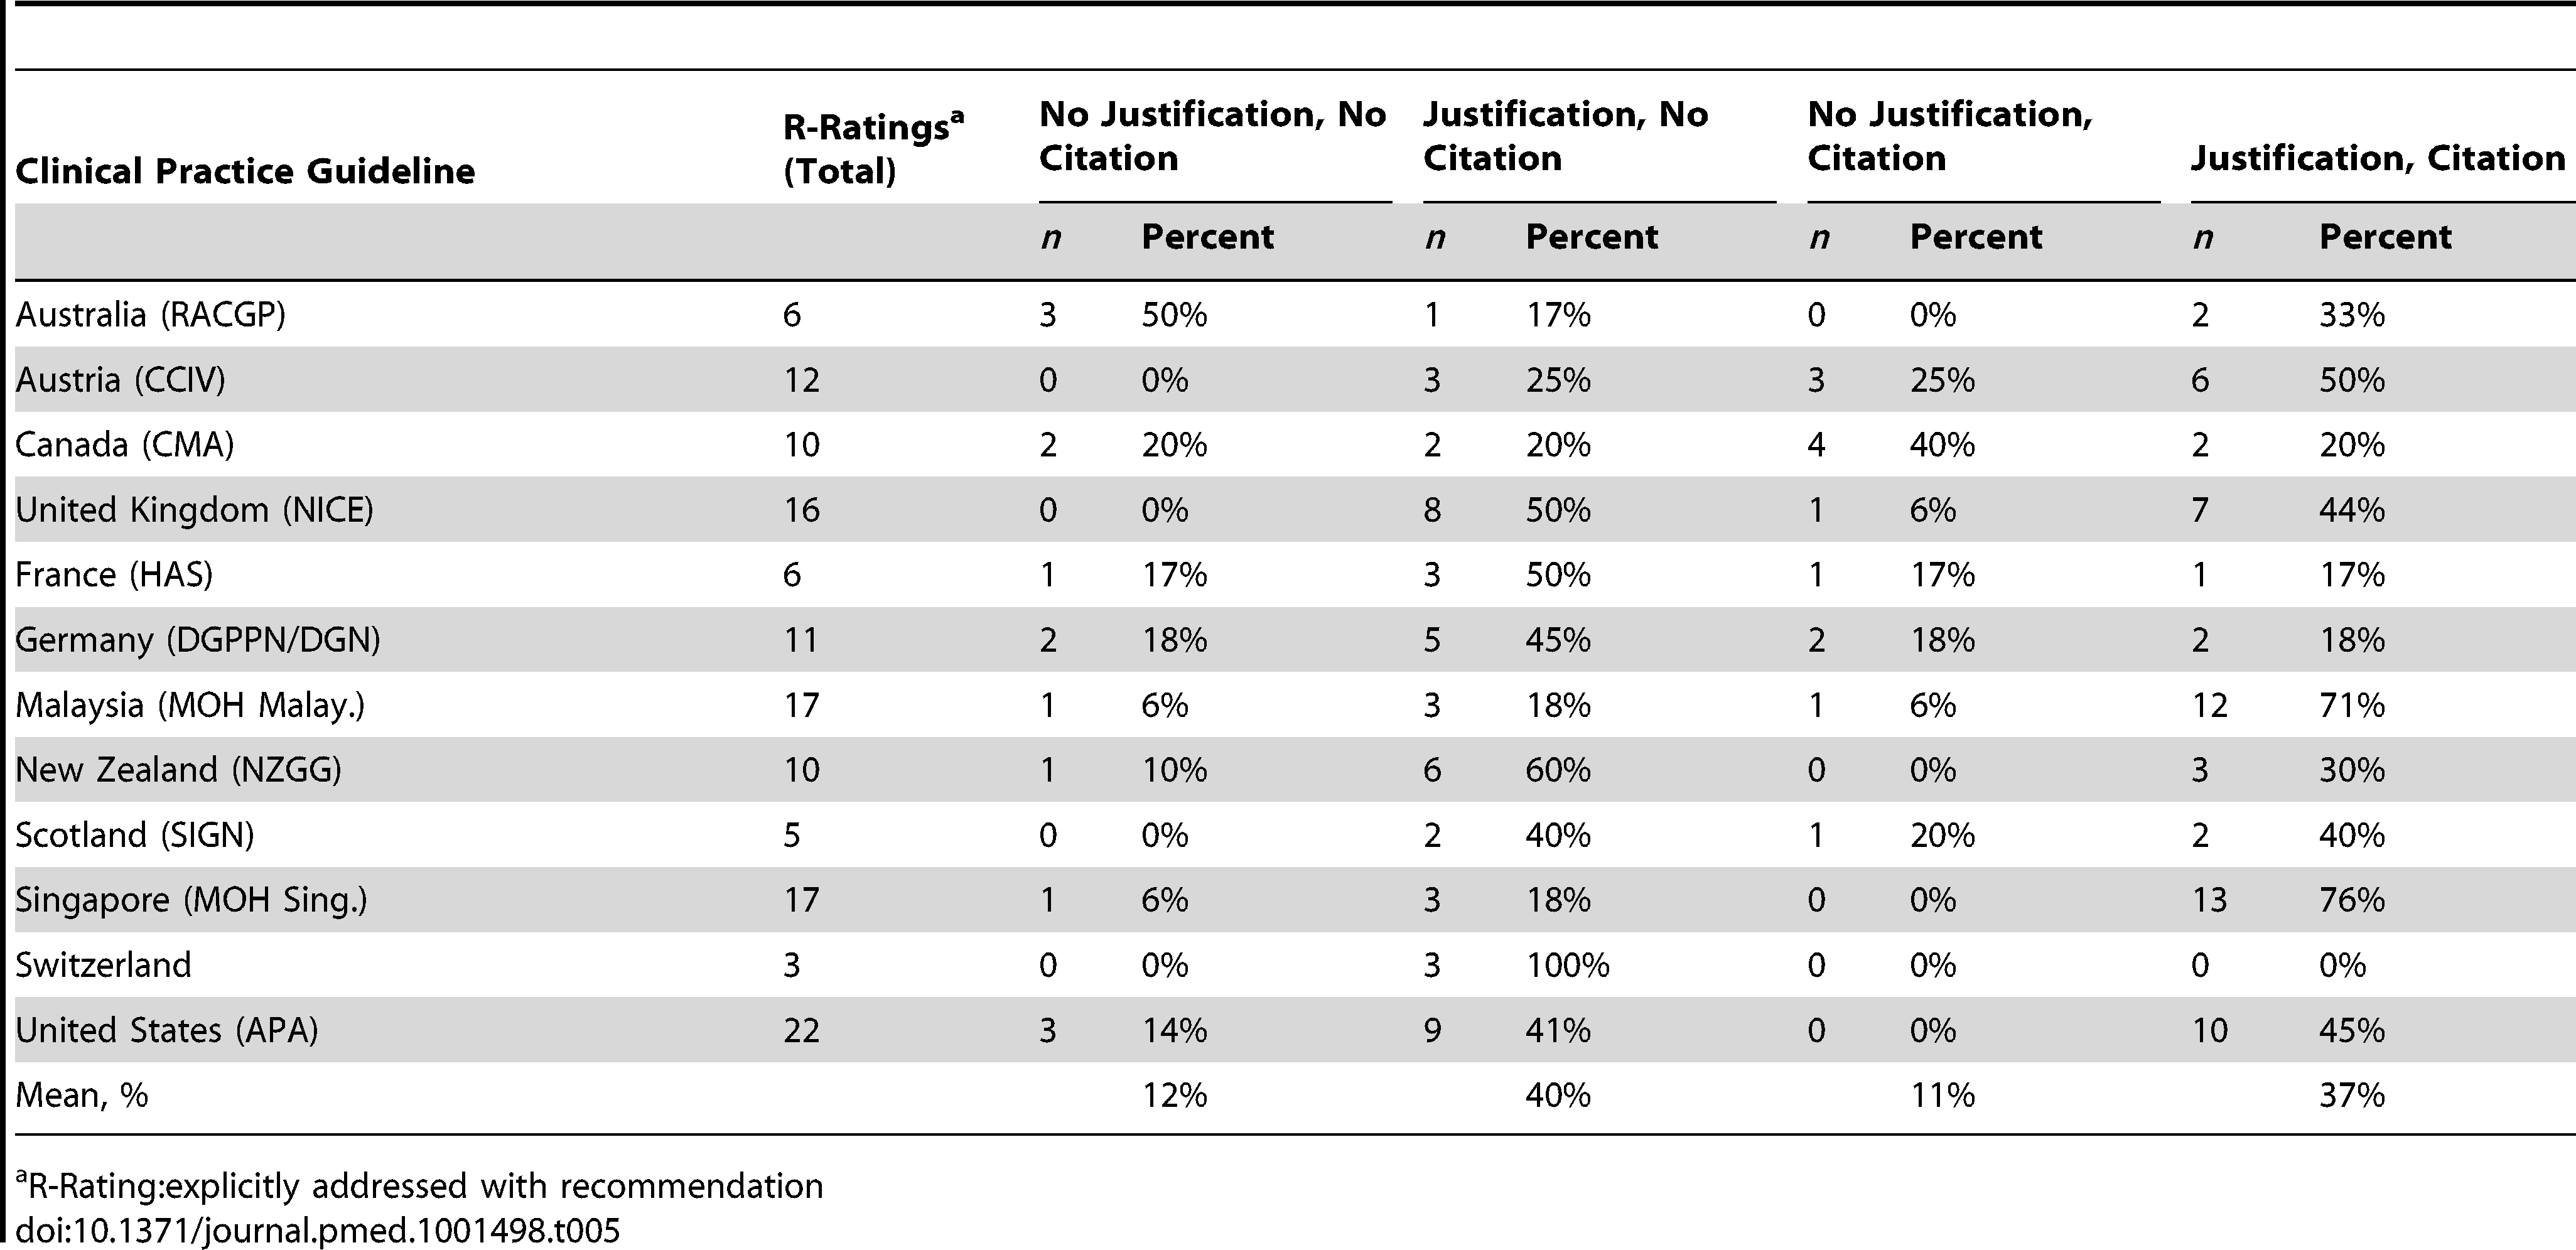 Rating results for how often a CPG gave a recommendation (R-Rating) along with justification and/or citations with respect to the 31 DSEIs presented.